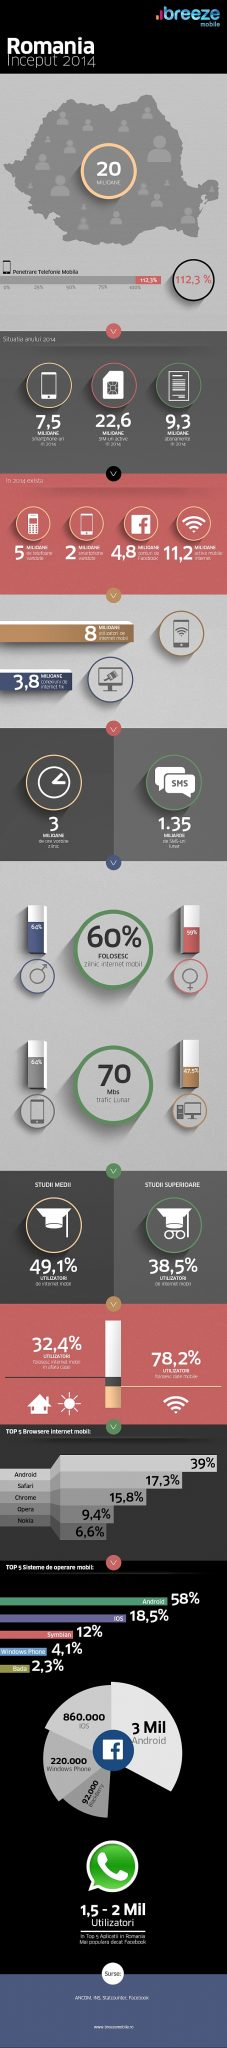 Infografic Breeze Mobile 2014